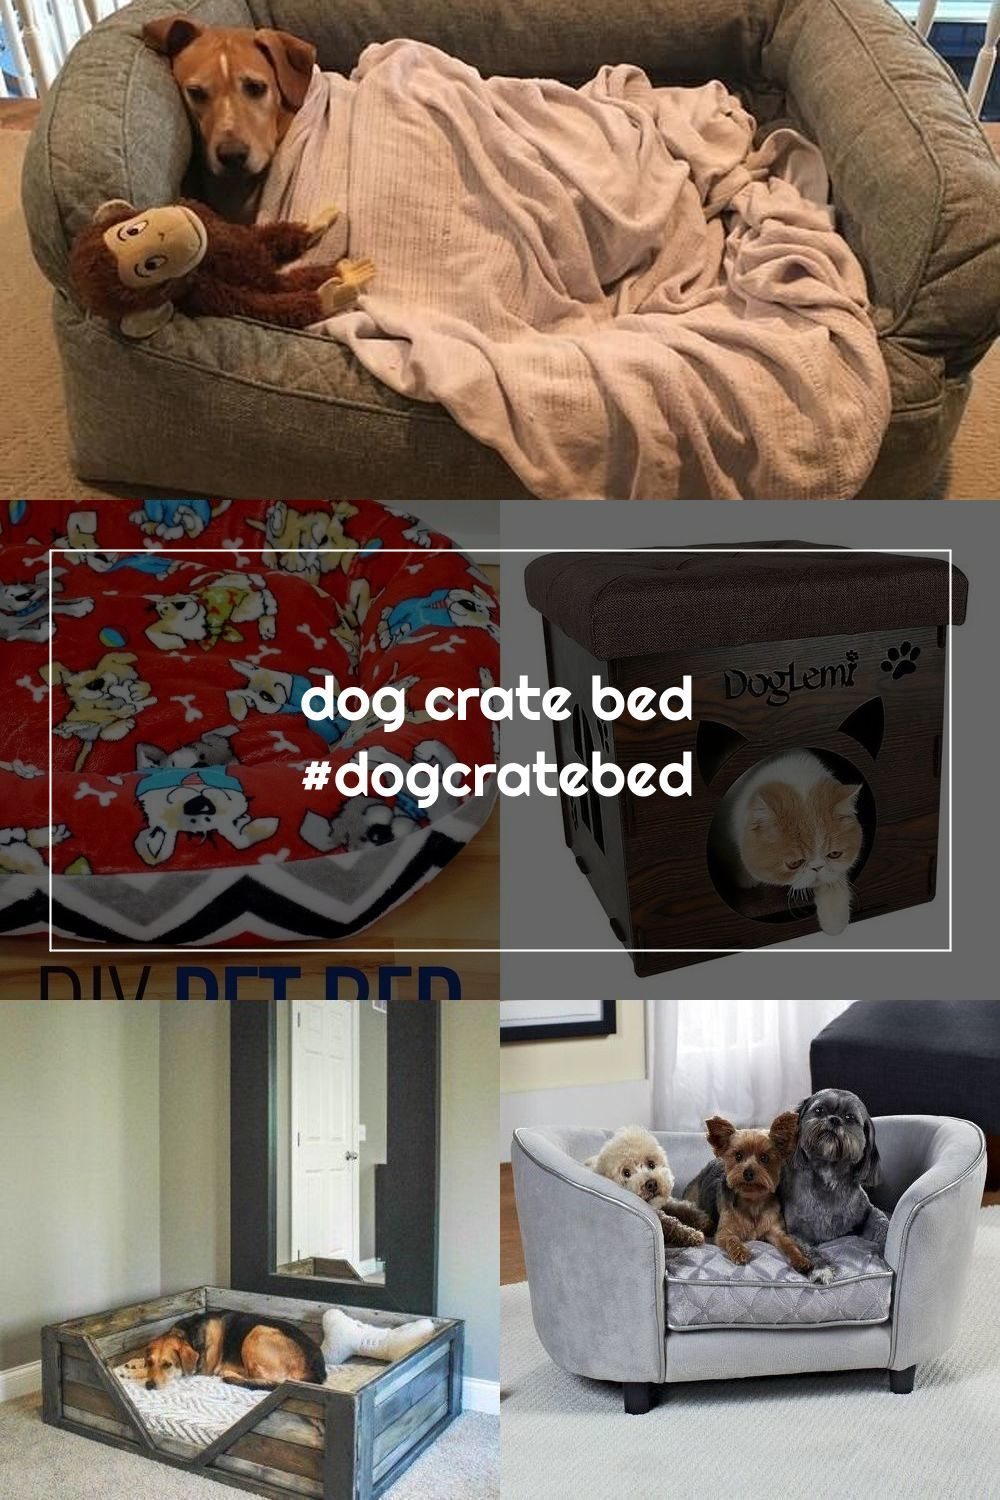 Dog Crate Bed Dogcratebed In 2020 Dog Crate Bed Crate Bed Dog Crate